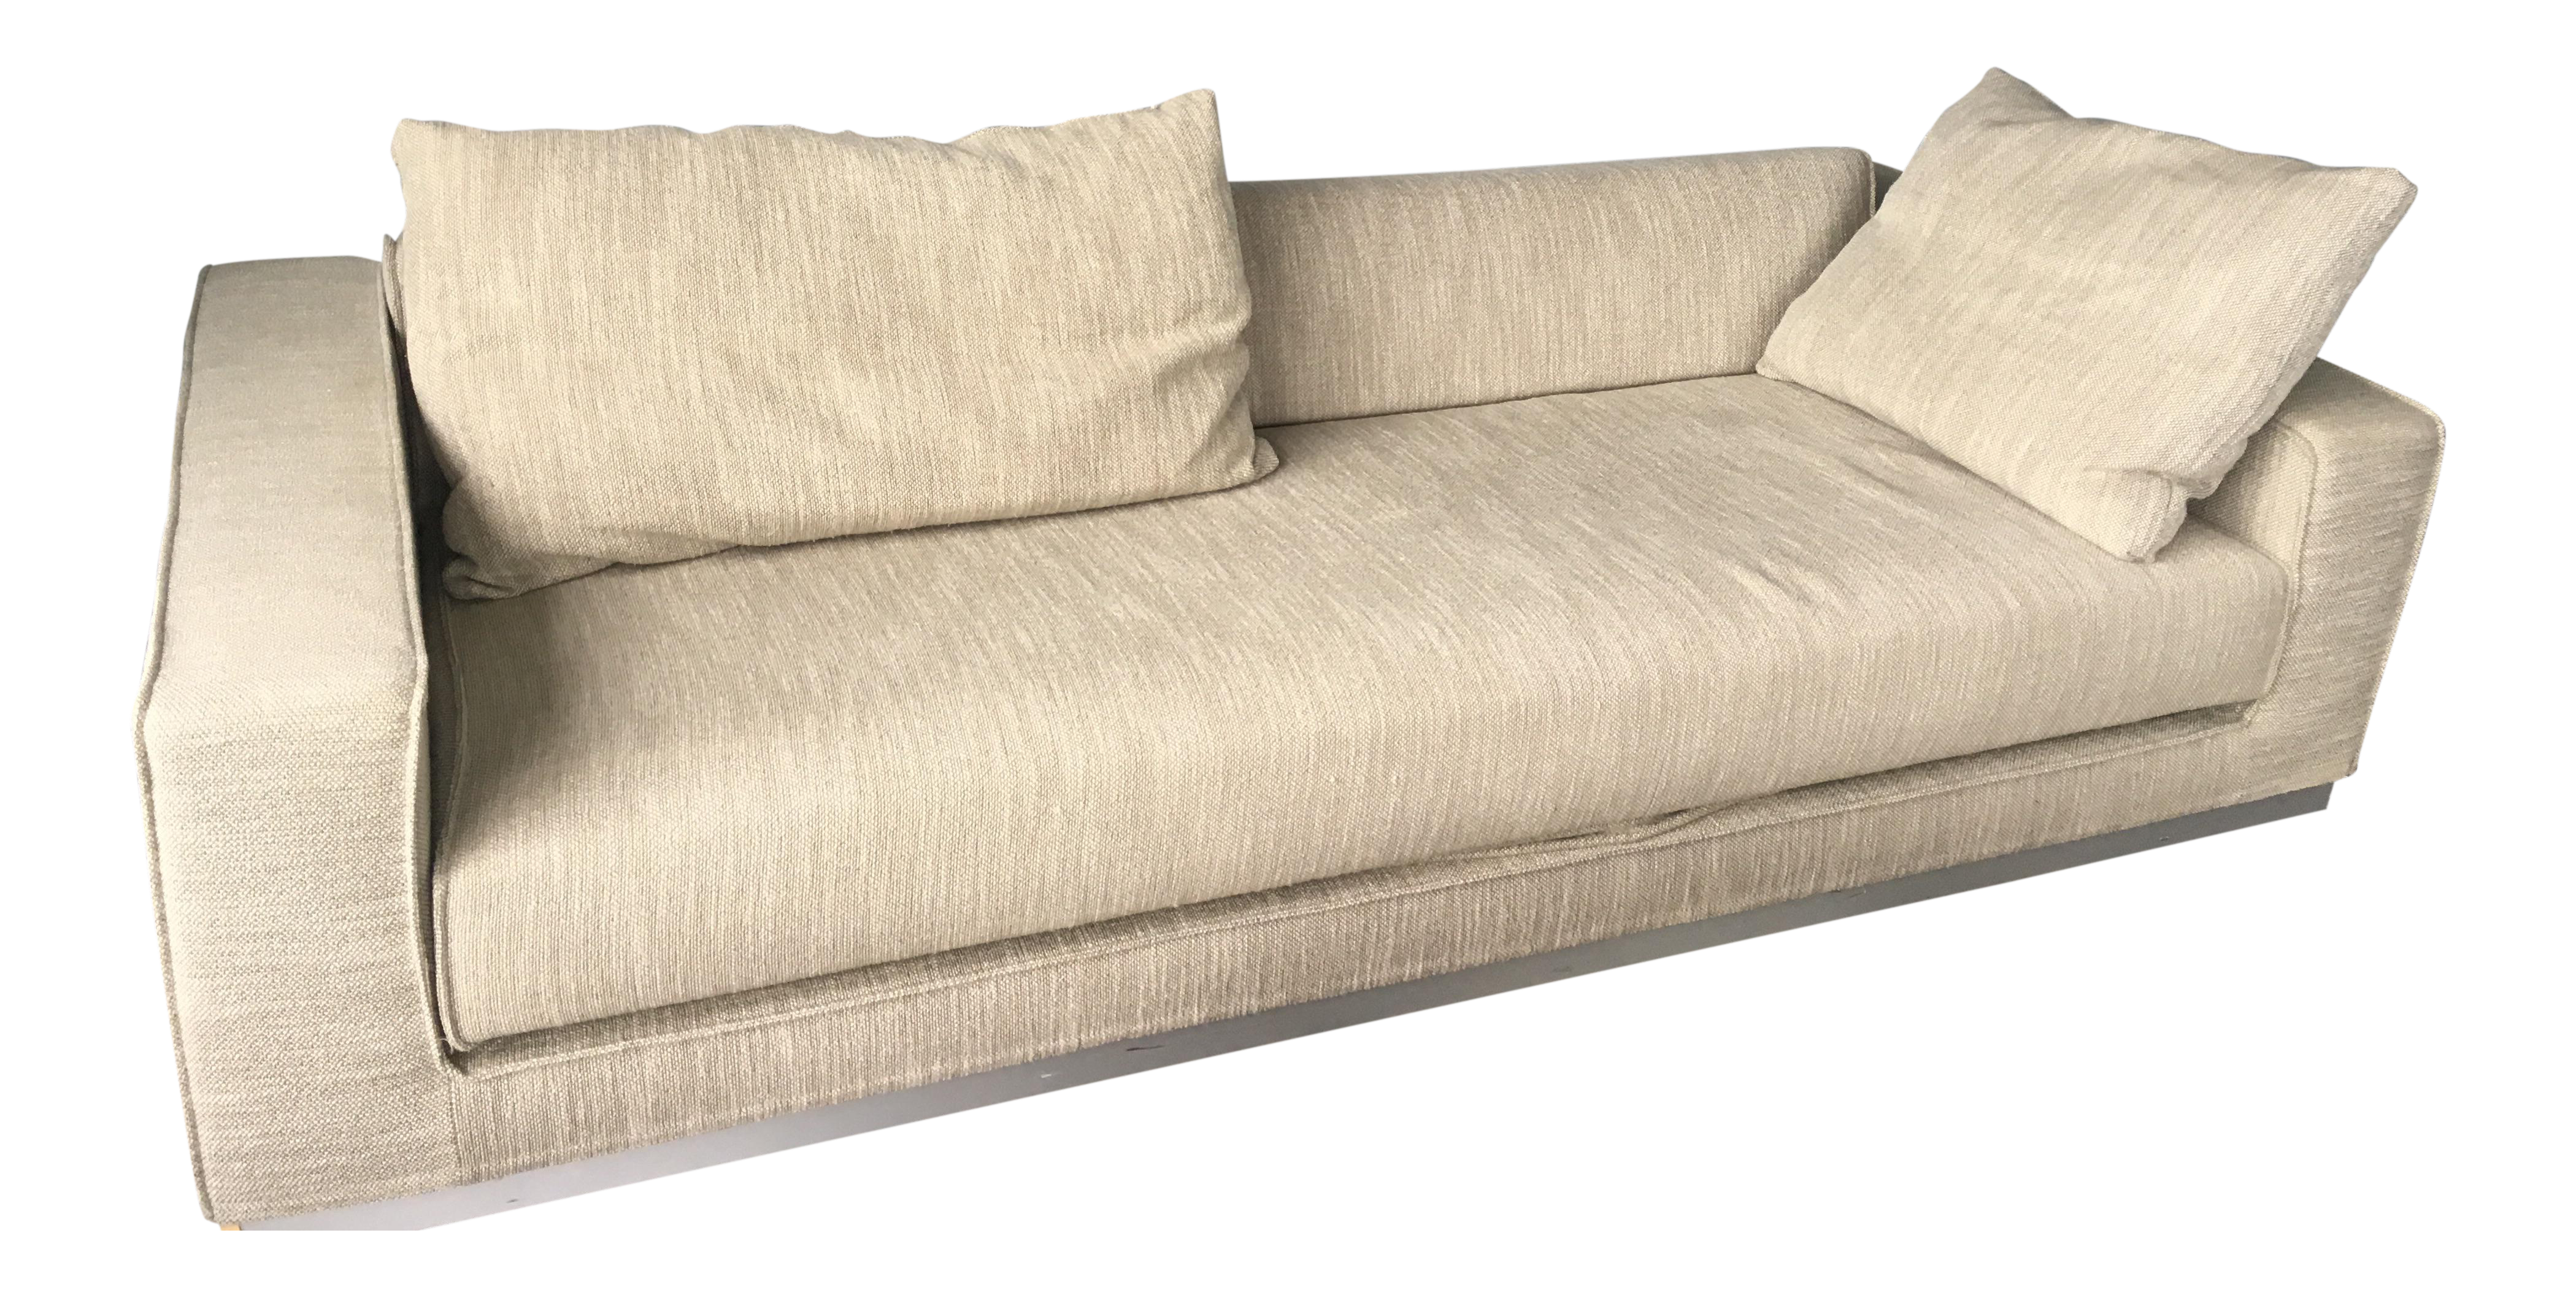 Sofa bed design within reach - Image Of Design Within Reach Havana Sleeper Sofa Bed